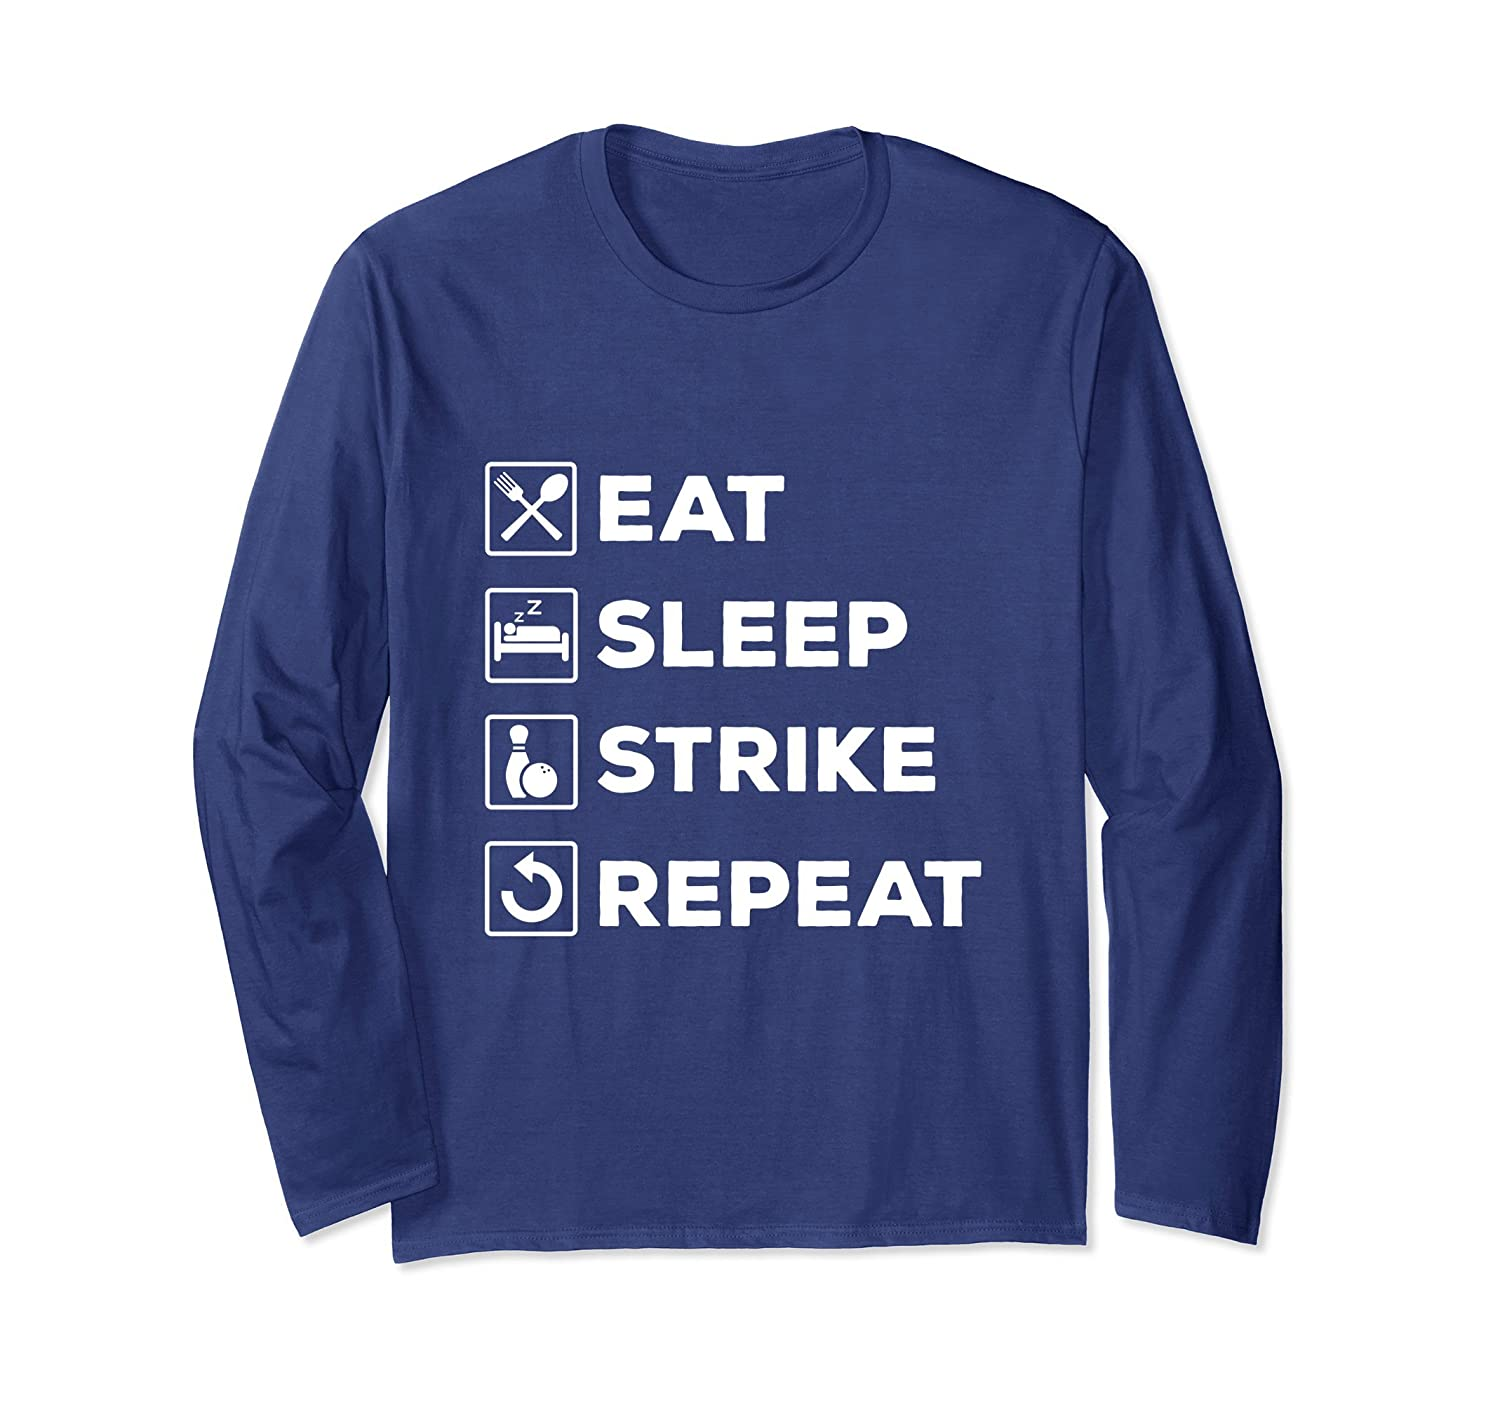 Amazon com: Eat Sleep Strike Repeat Bowler Long Sleeve Shirt Men